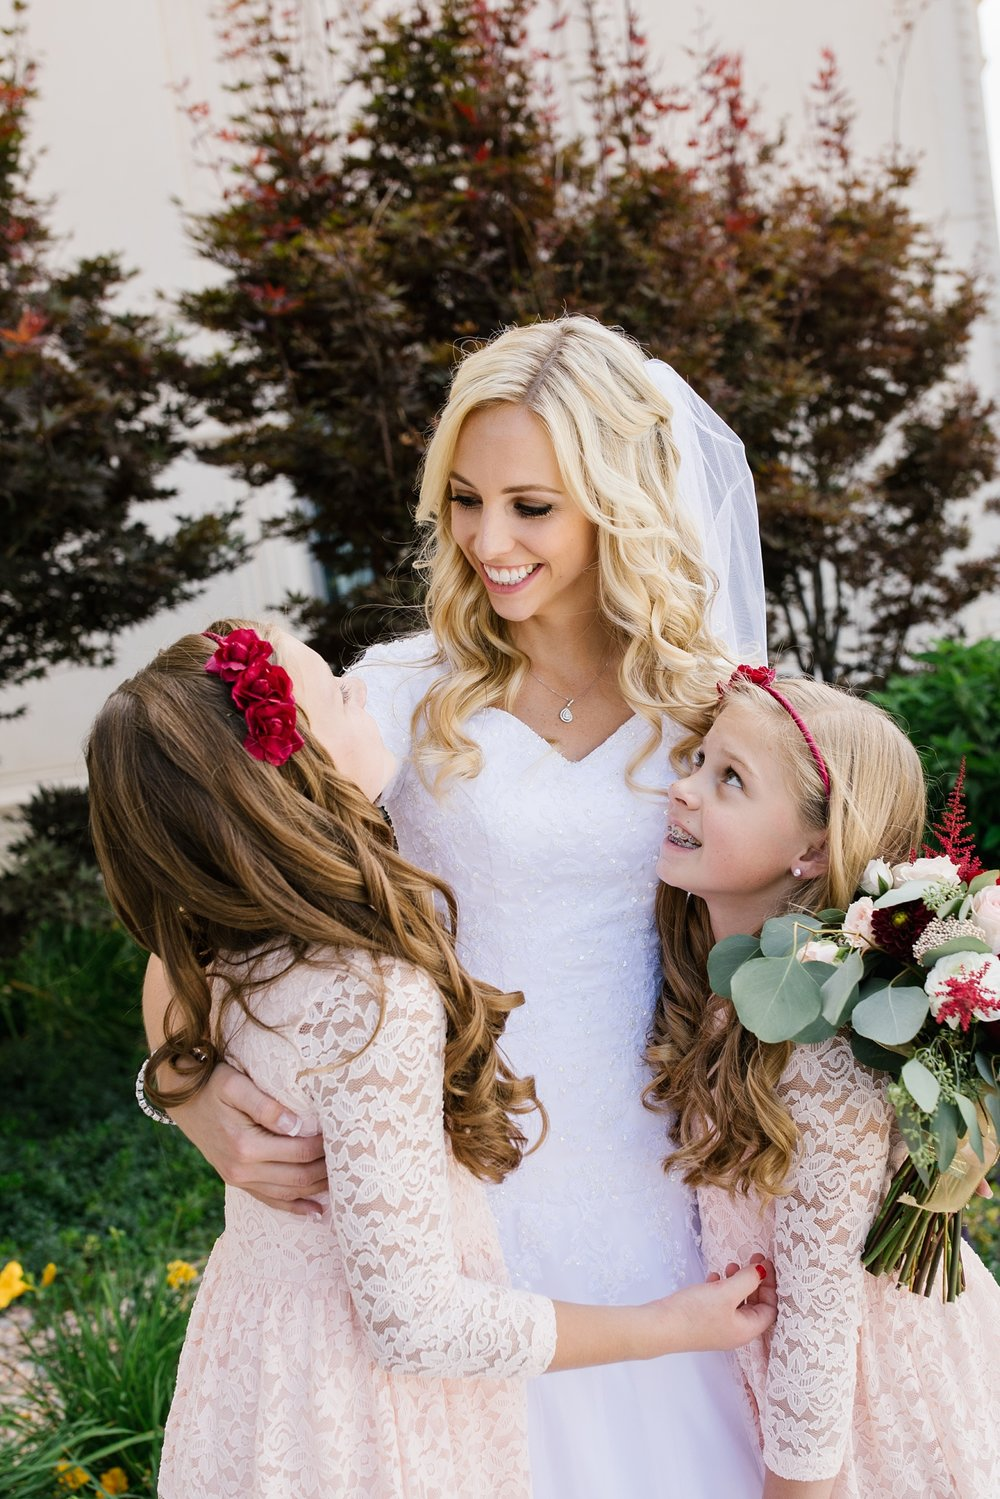 HannahChaseWedding-93_Lizzie-B-Imagery-Utah-Wedding-Photographer-Bridal-Photography-Payson-Utah-Temple-Clarion-Gardens-Catering-and-Events-Center.jpg